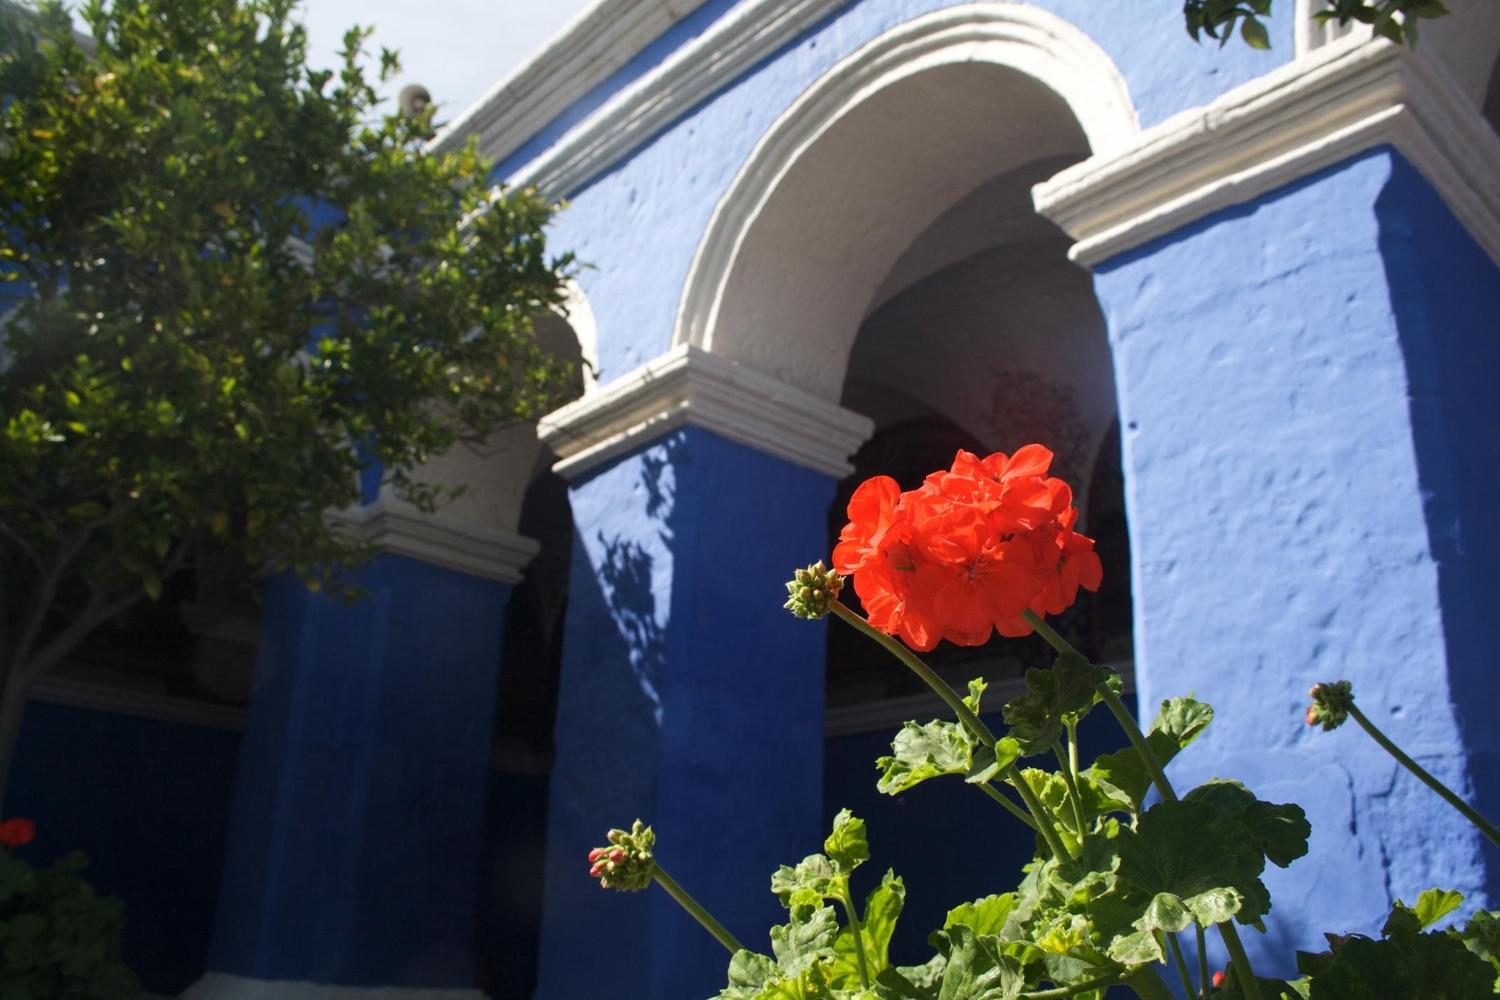 Geranium in the Santa Catalina convent of Arequipa